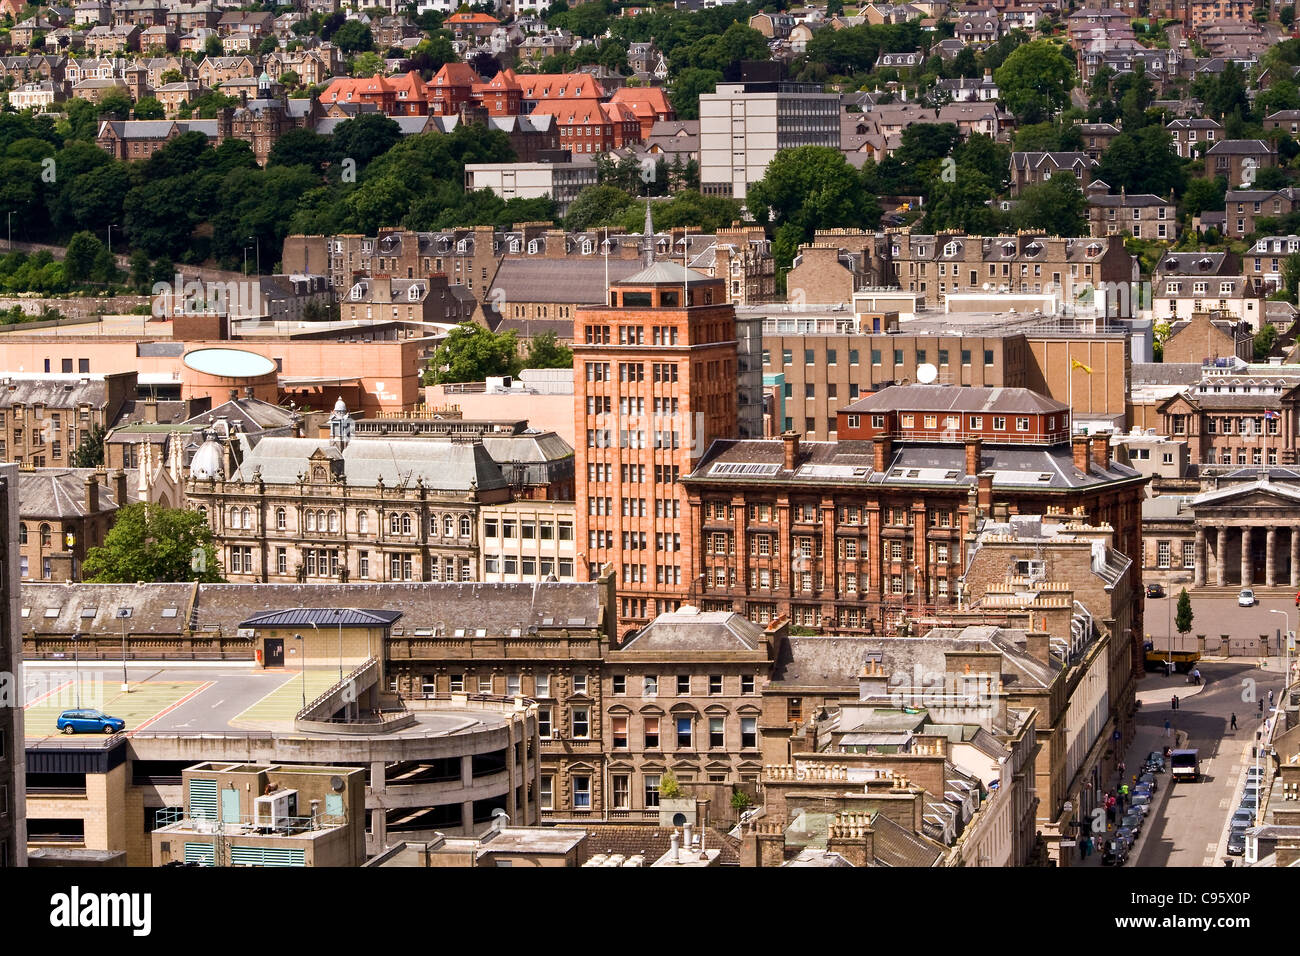 Ariel landscape view of modern and old buildings in Dundee,UK - Stock Image